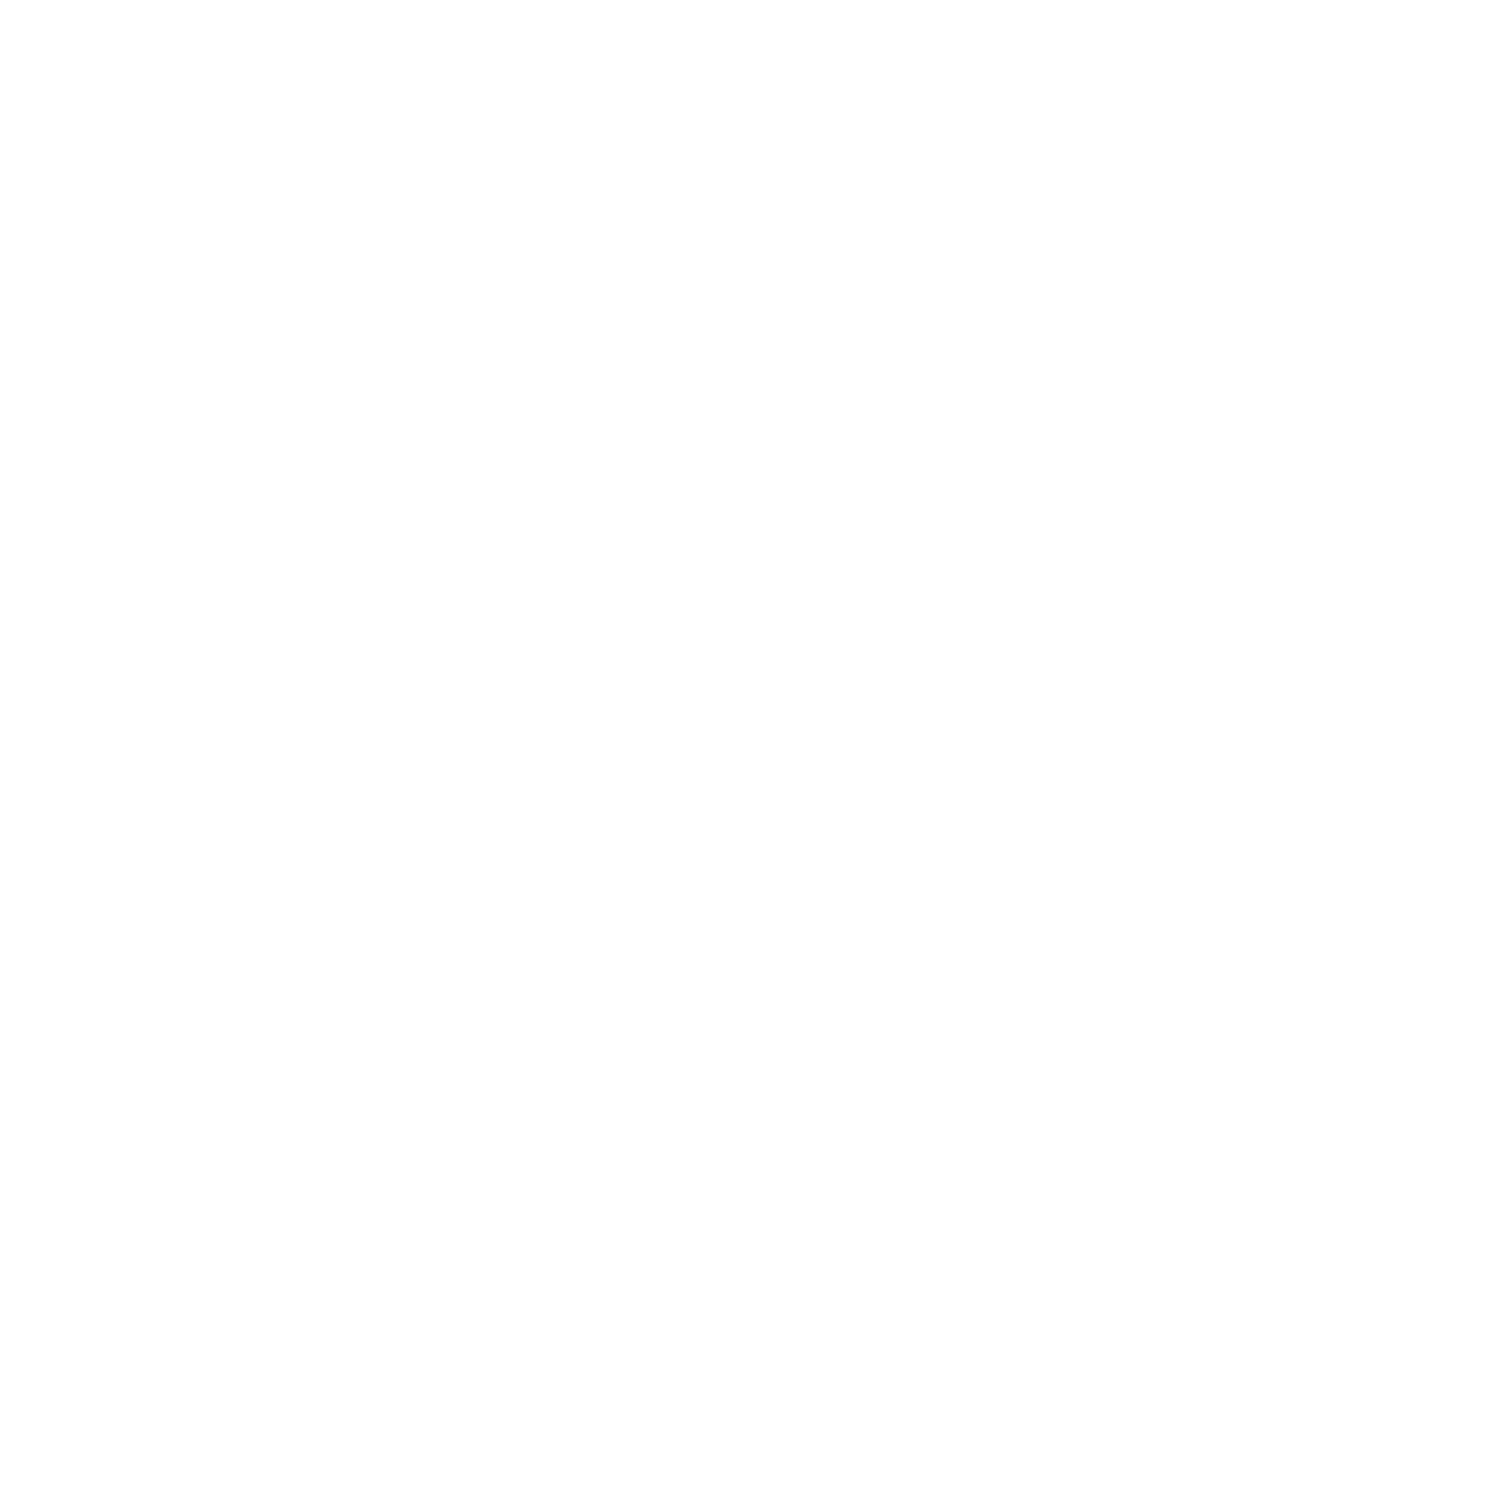 remoters.net